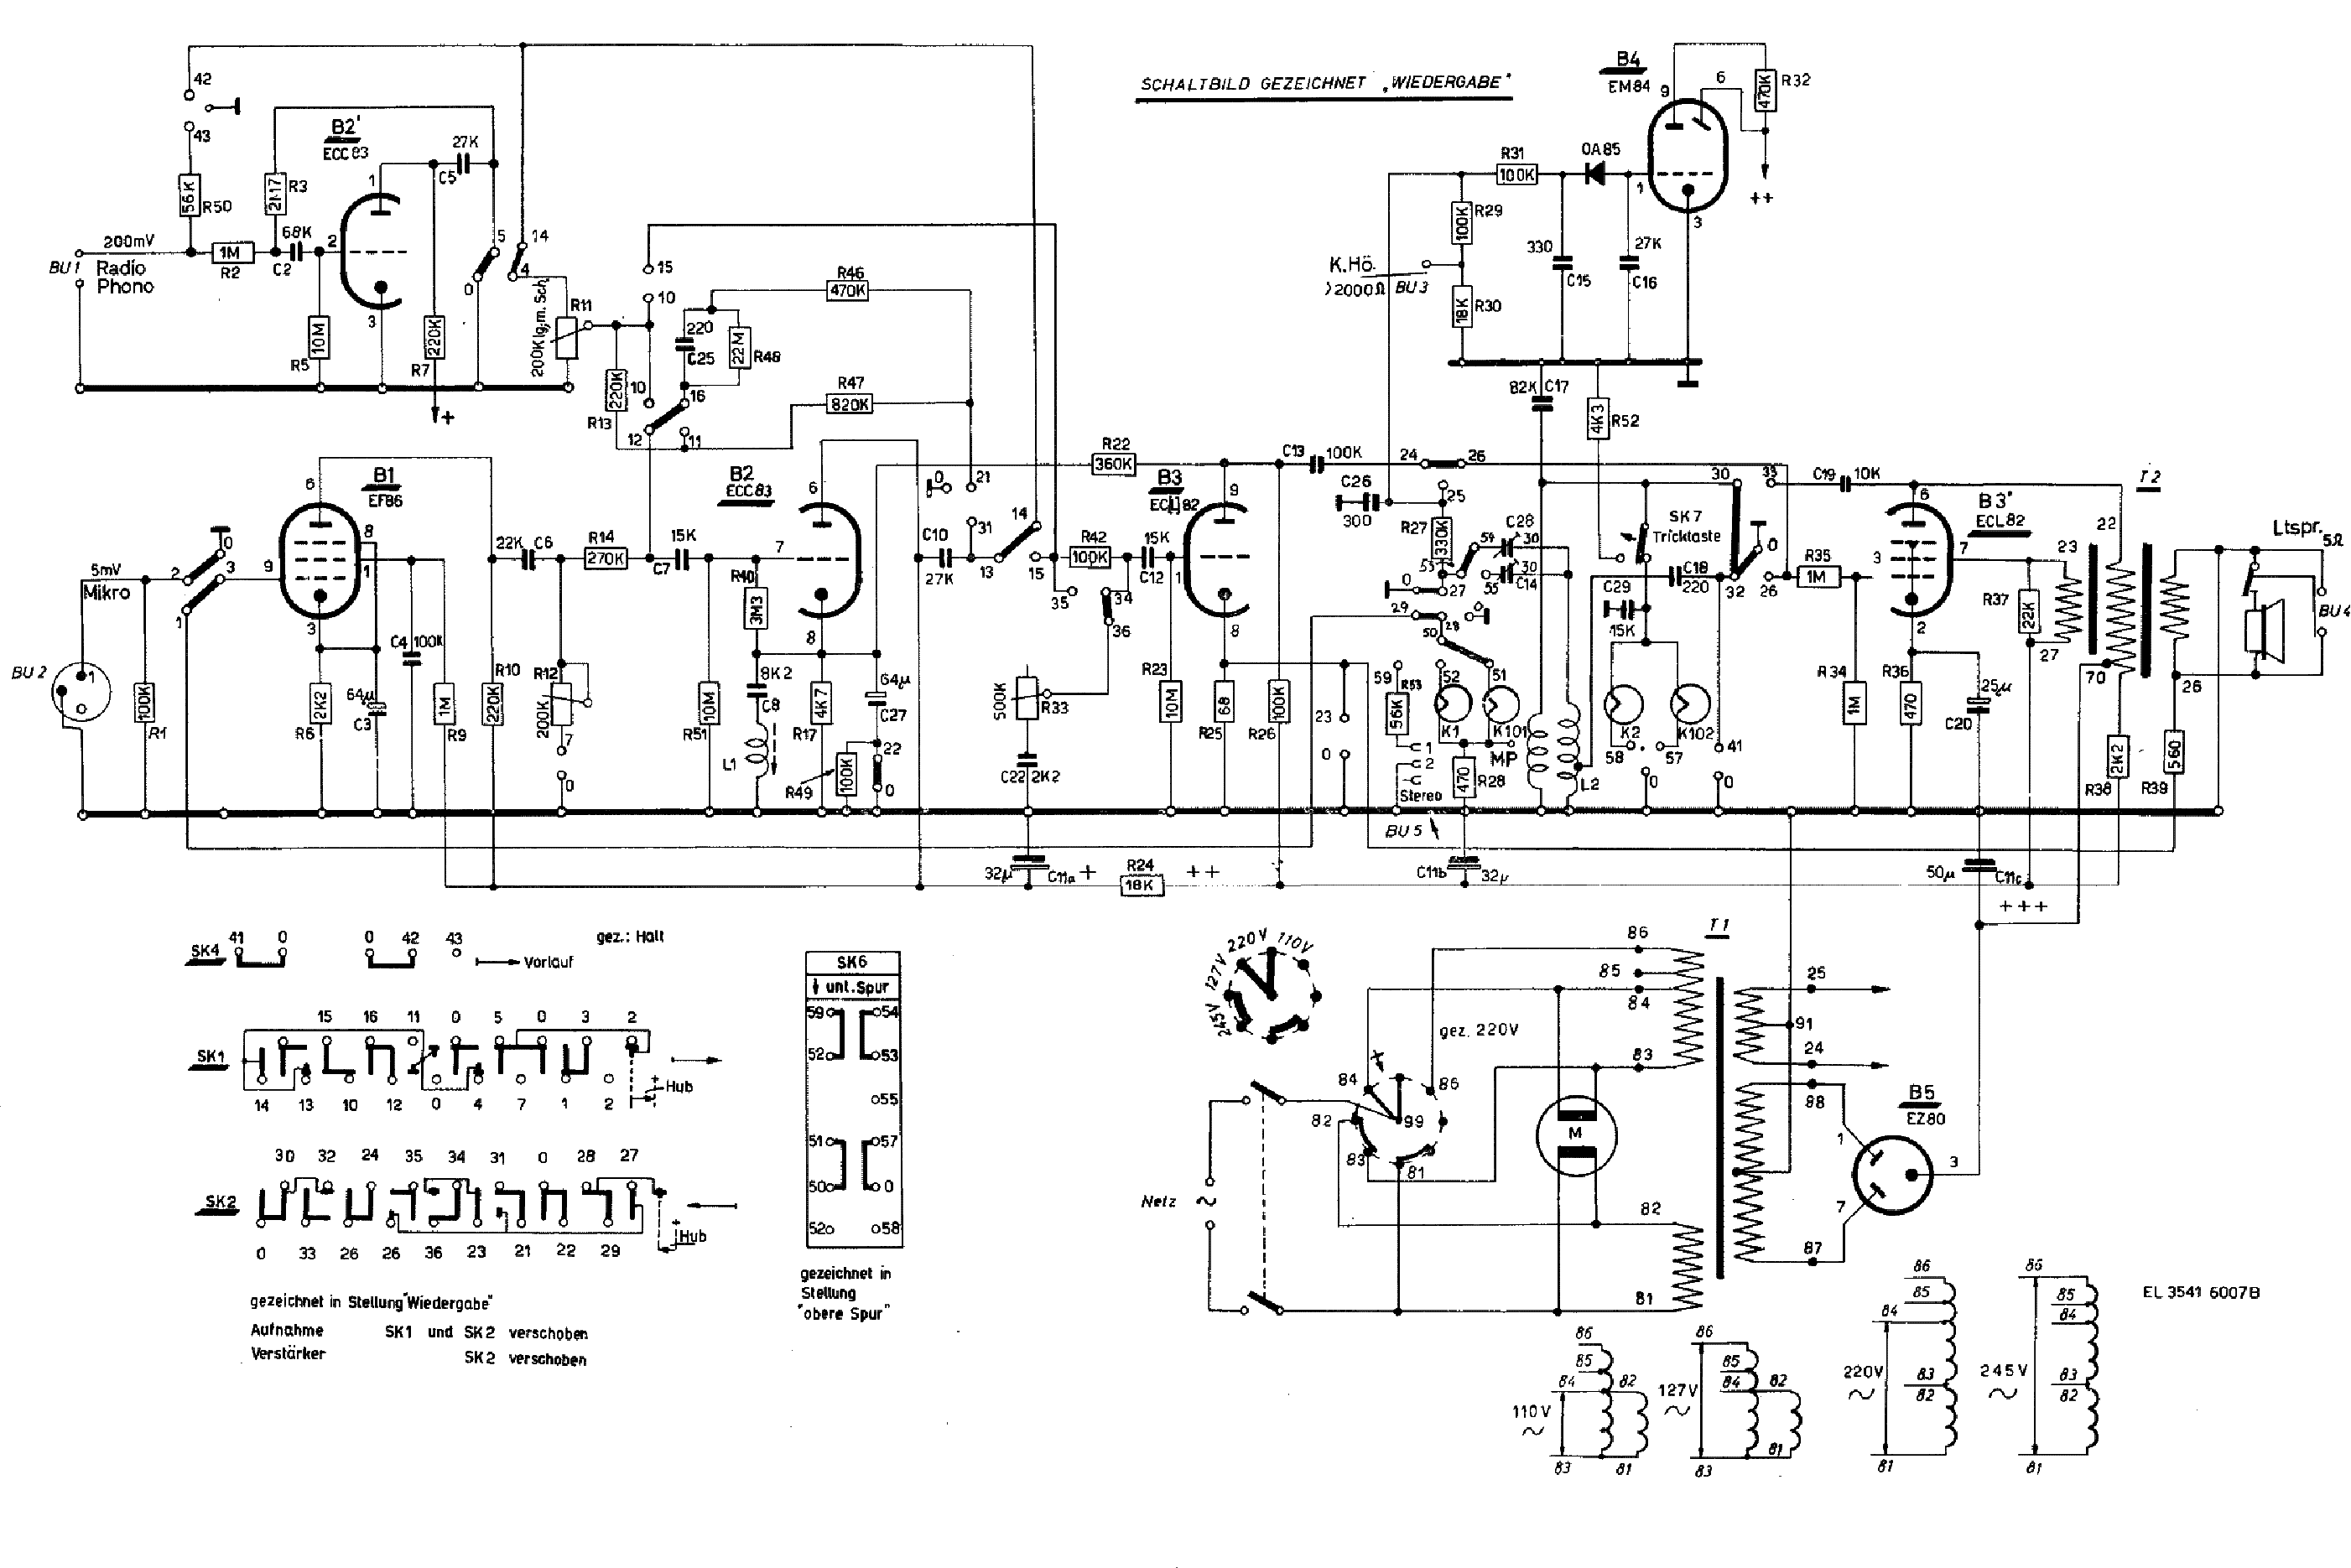 philips el3541 recorder sch service manual download  schematics  eeprom  repair info for